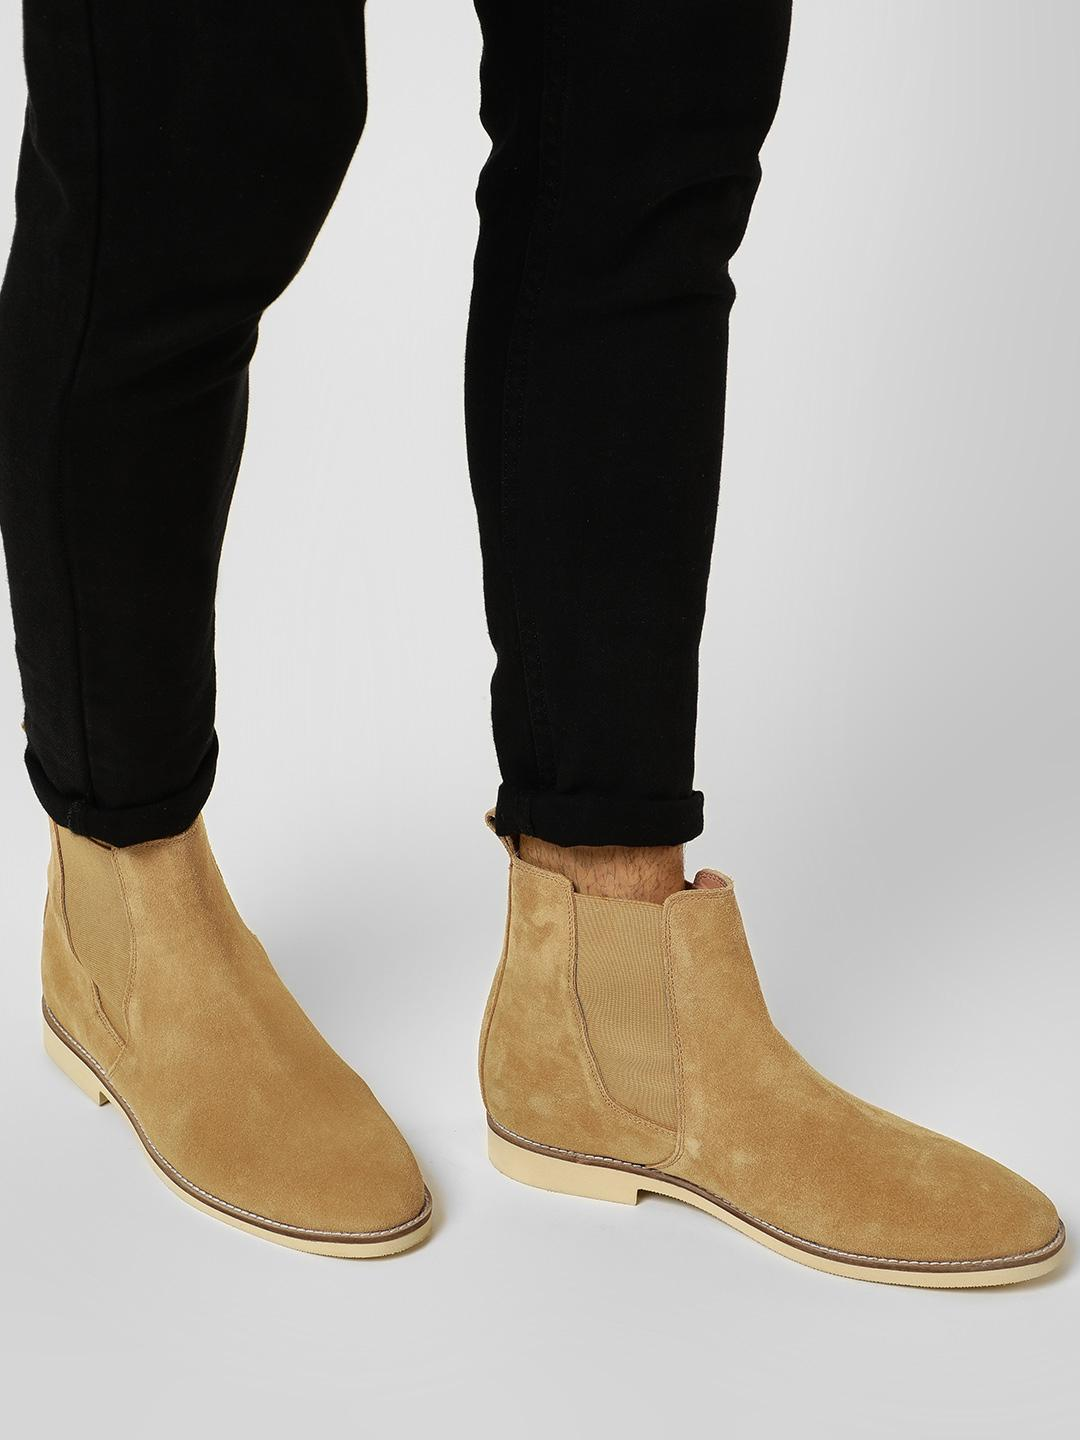 Griffin Tan Suede Gusset Chelsea Boots 1